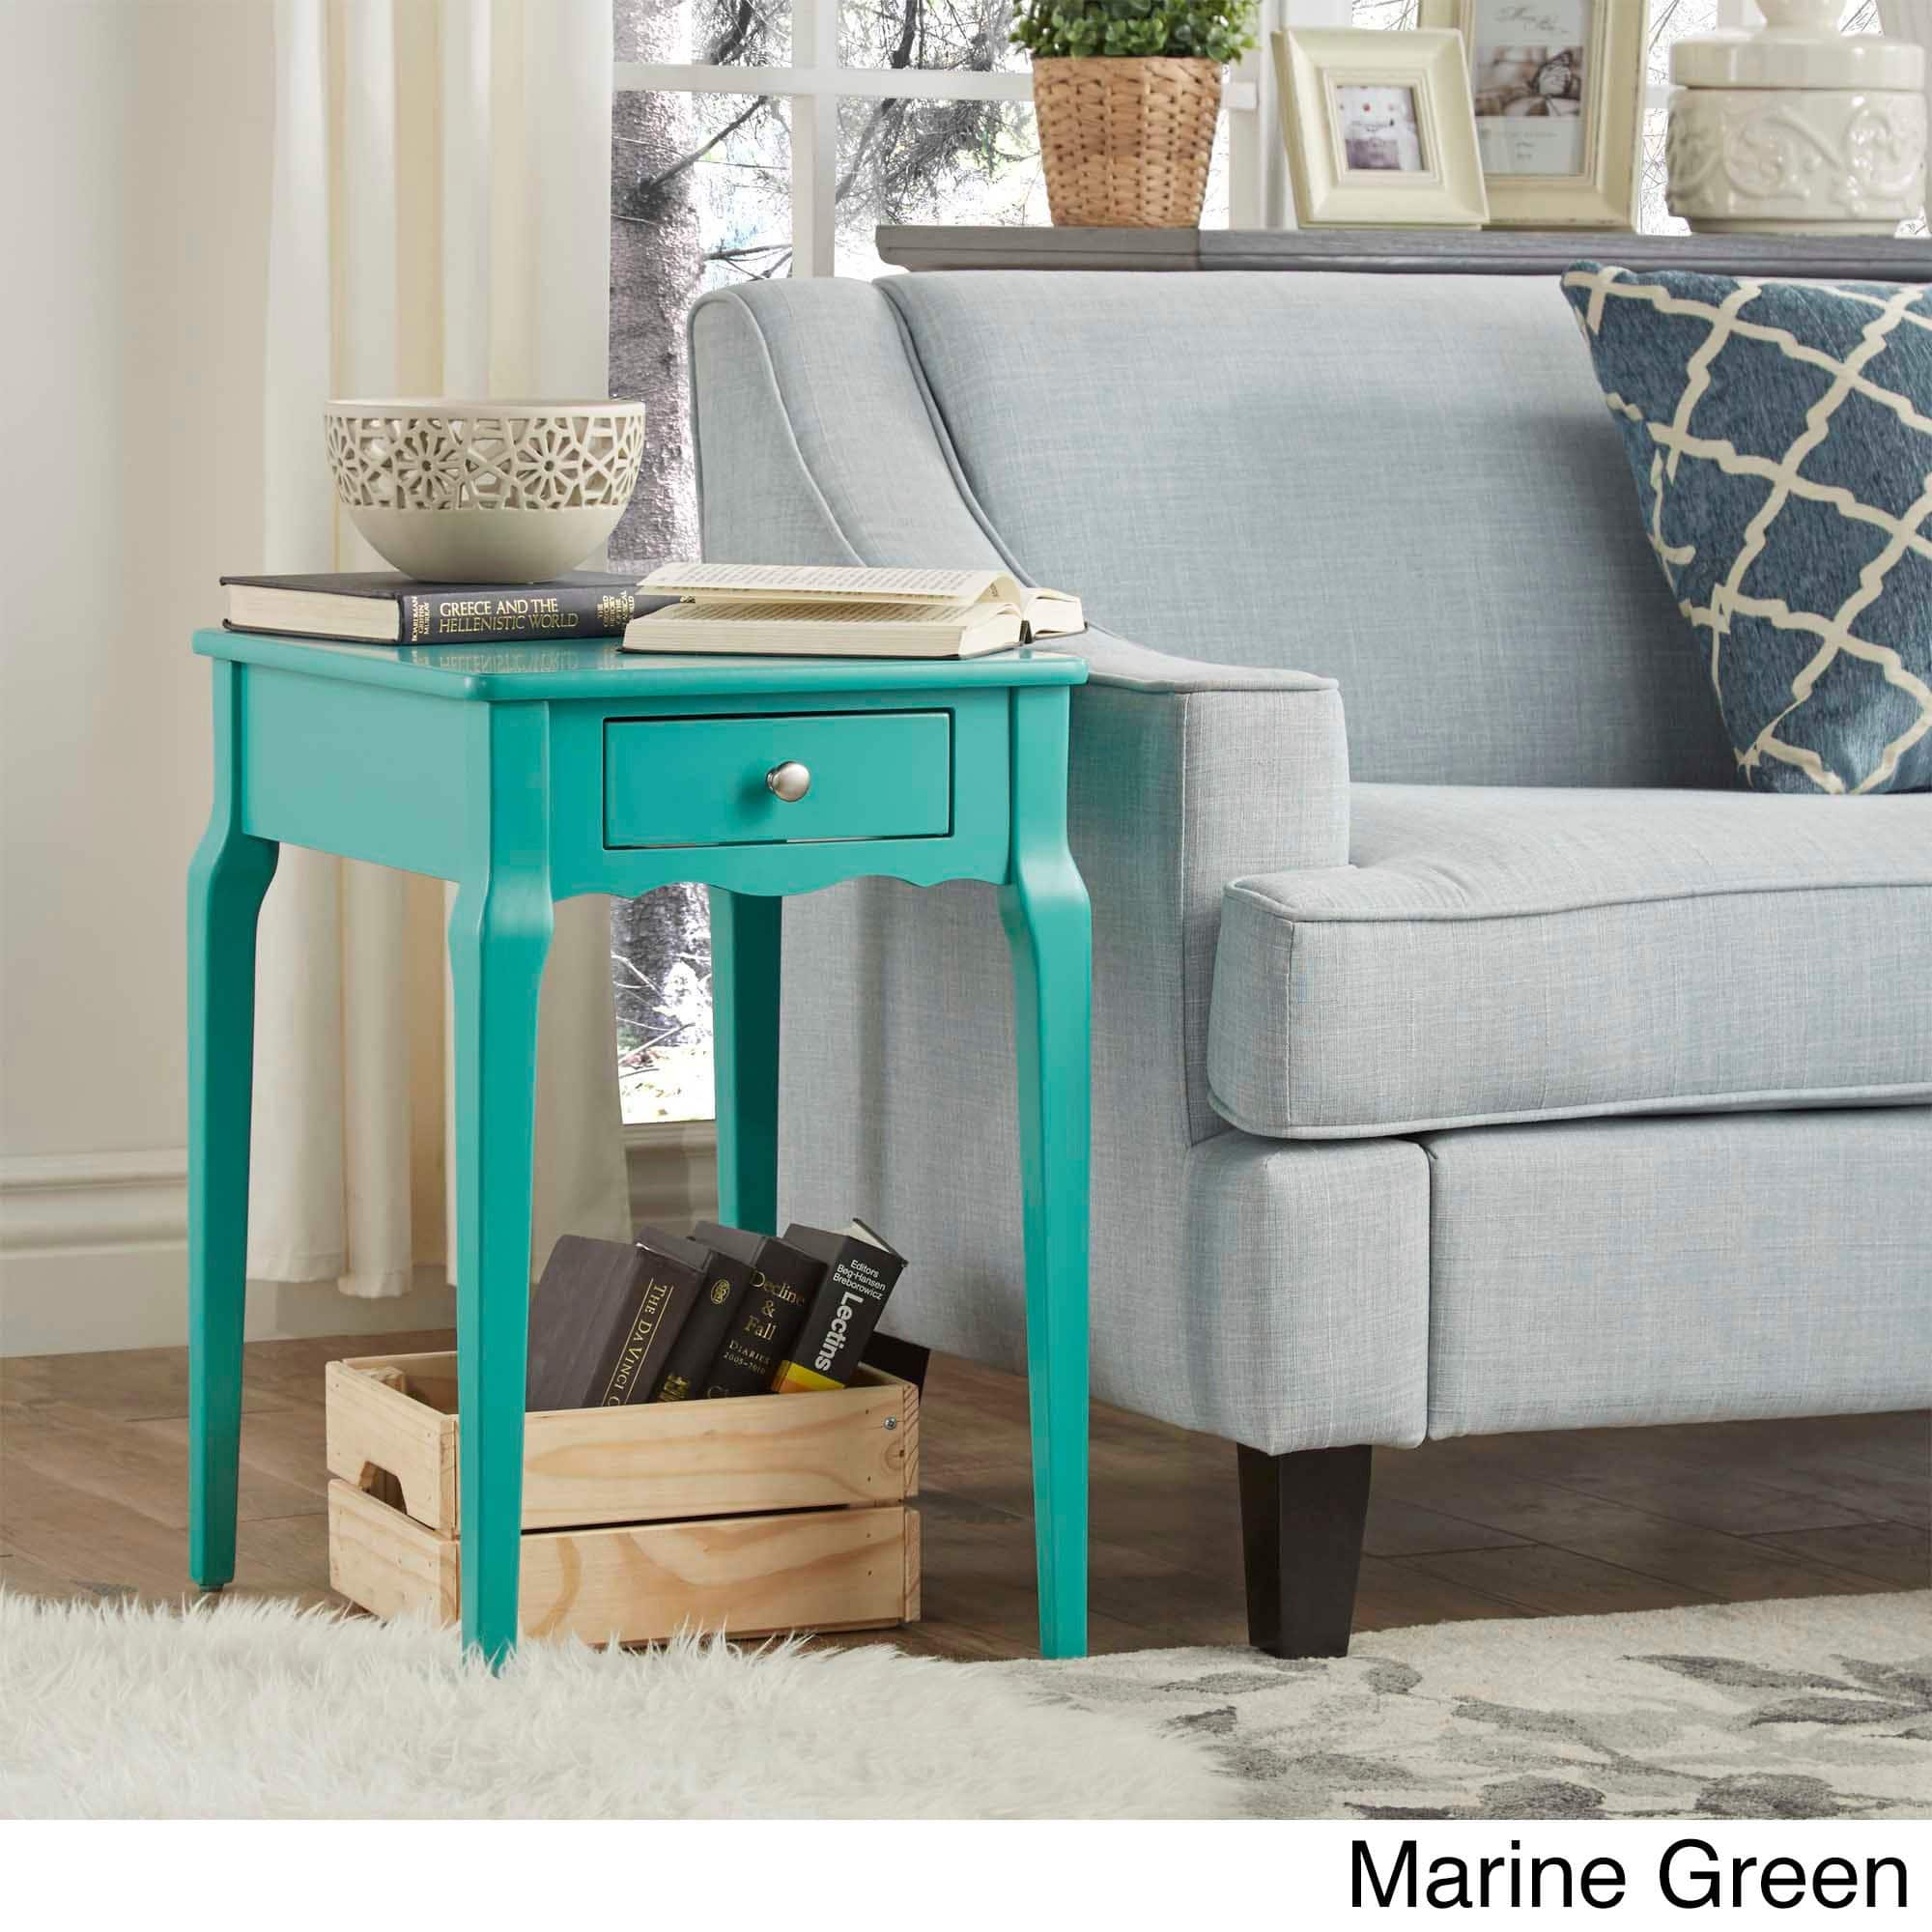 daniella drawer wood storage side table inspire bold accent single mint green free shipping today west elm glass floor lamp wine racks for home decor comfortable sofa pine bedside